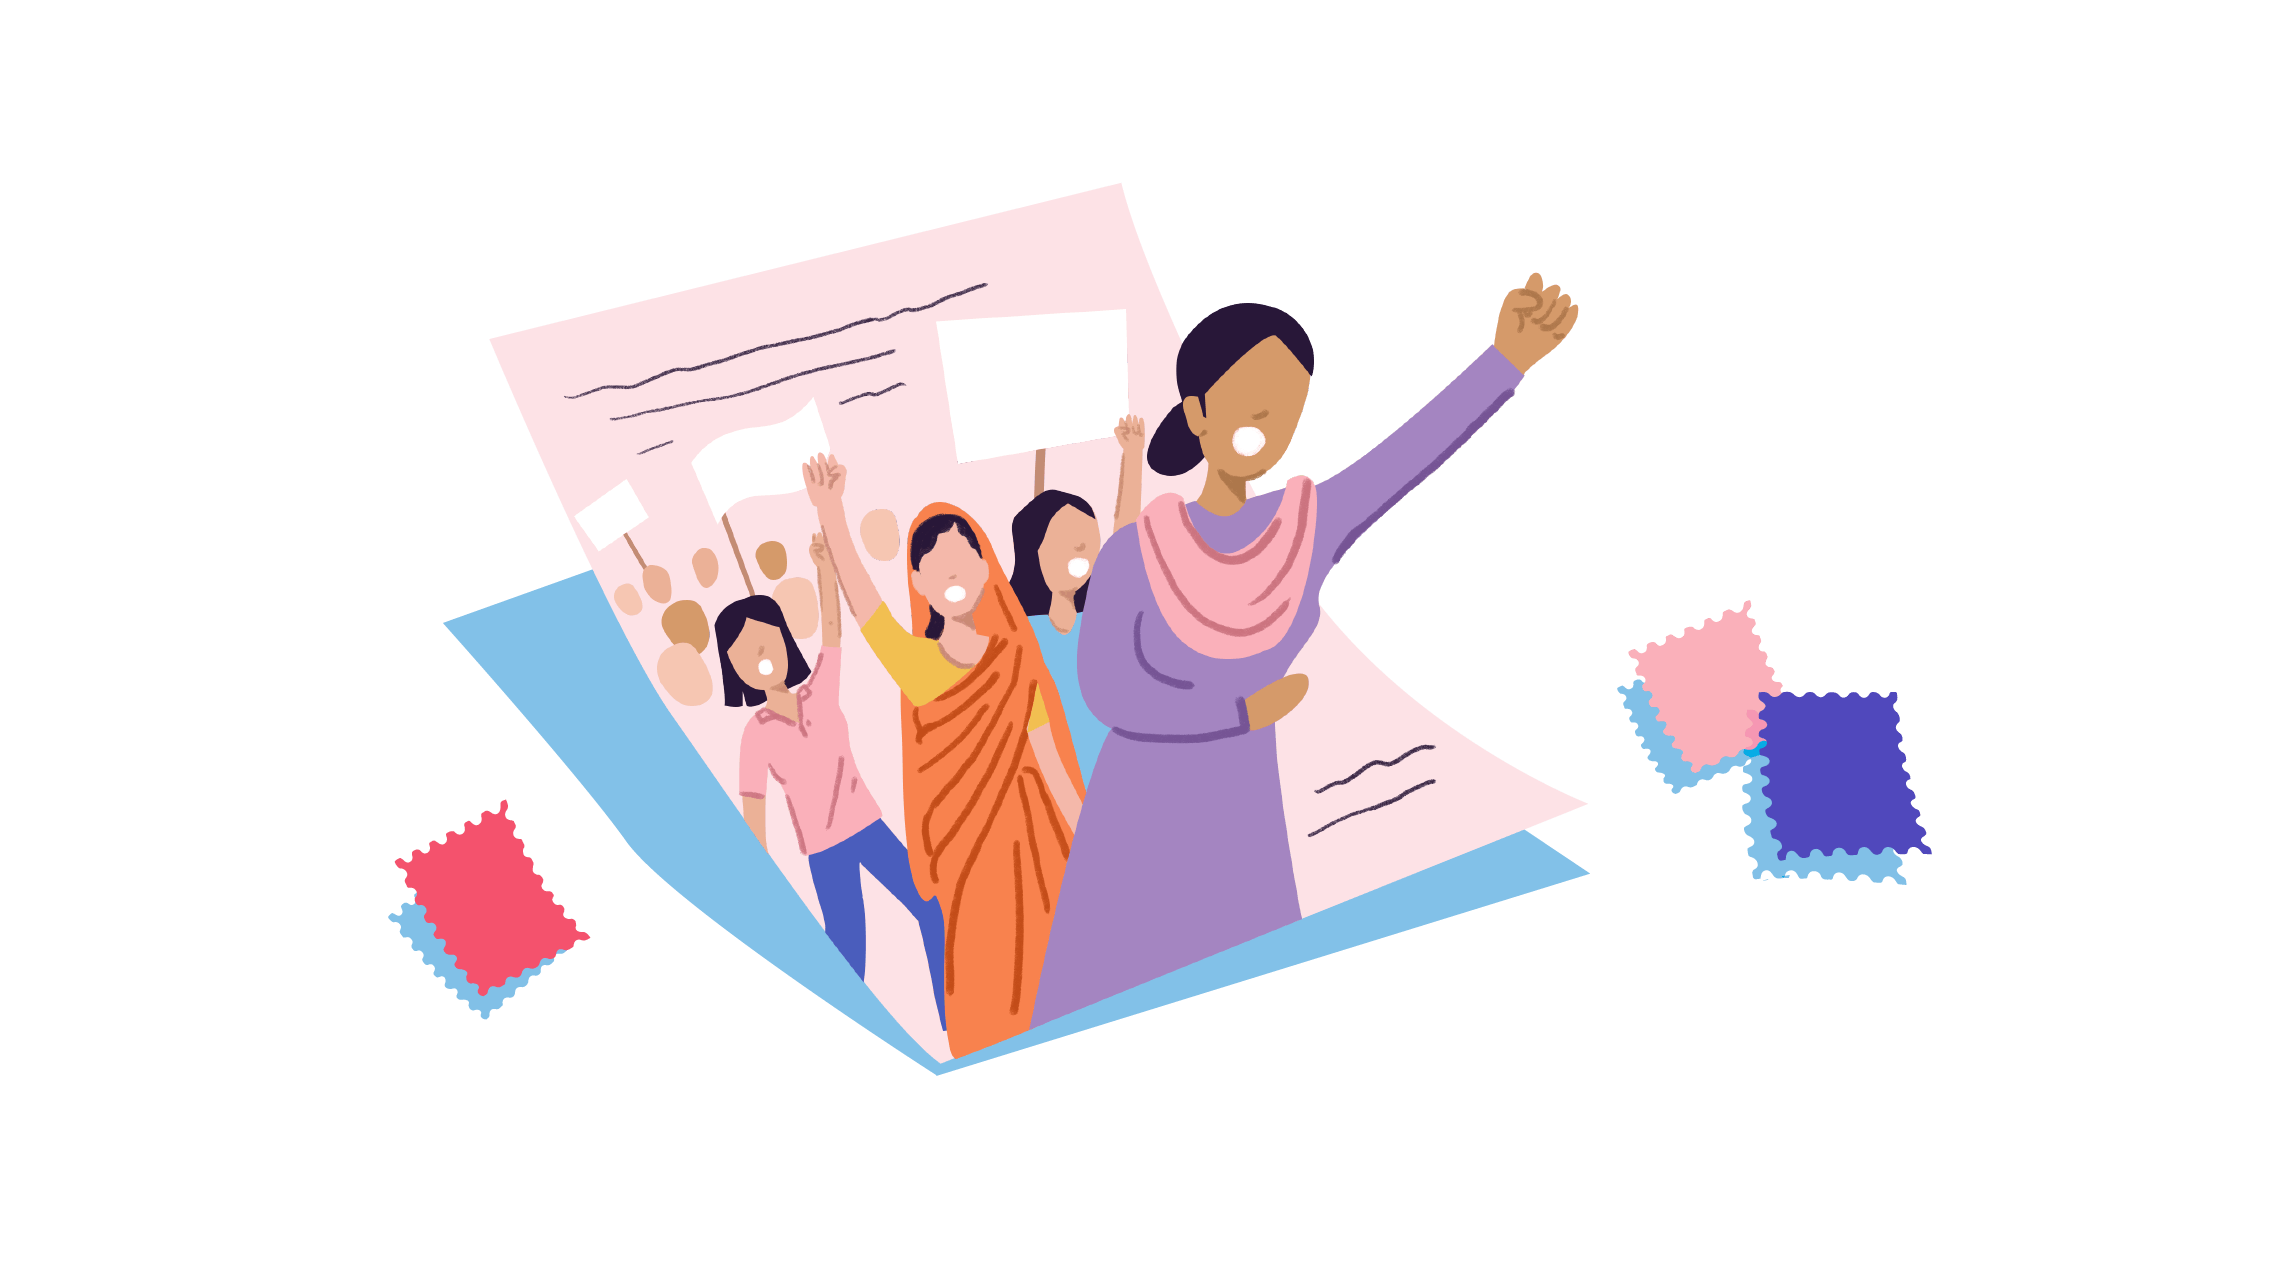 Power - An open letter to the Supreme Court changed the way many Indians thought about women's rights. The rest should be history.